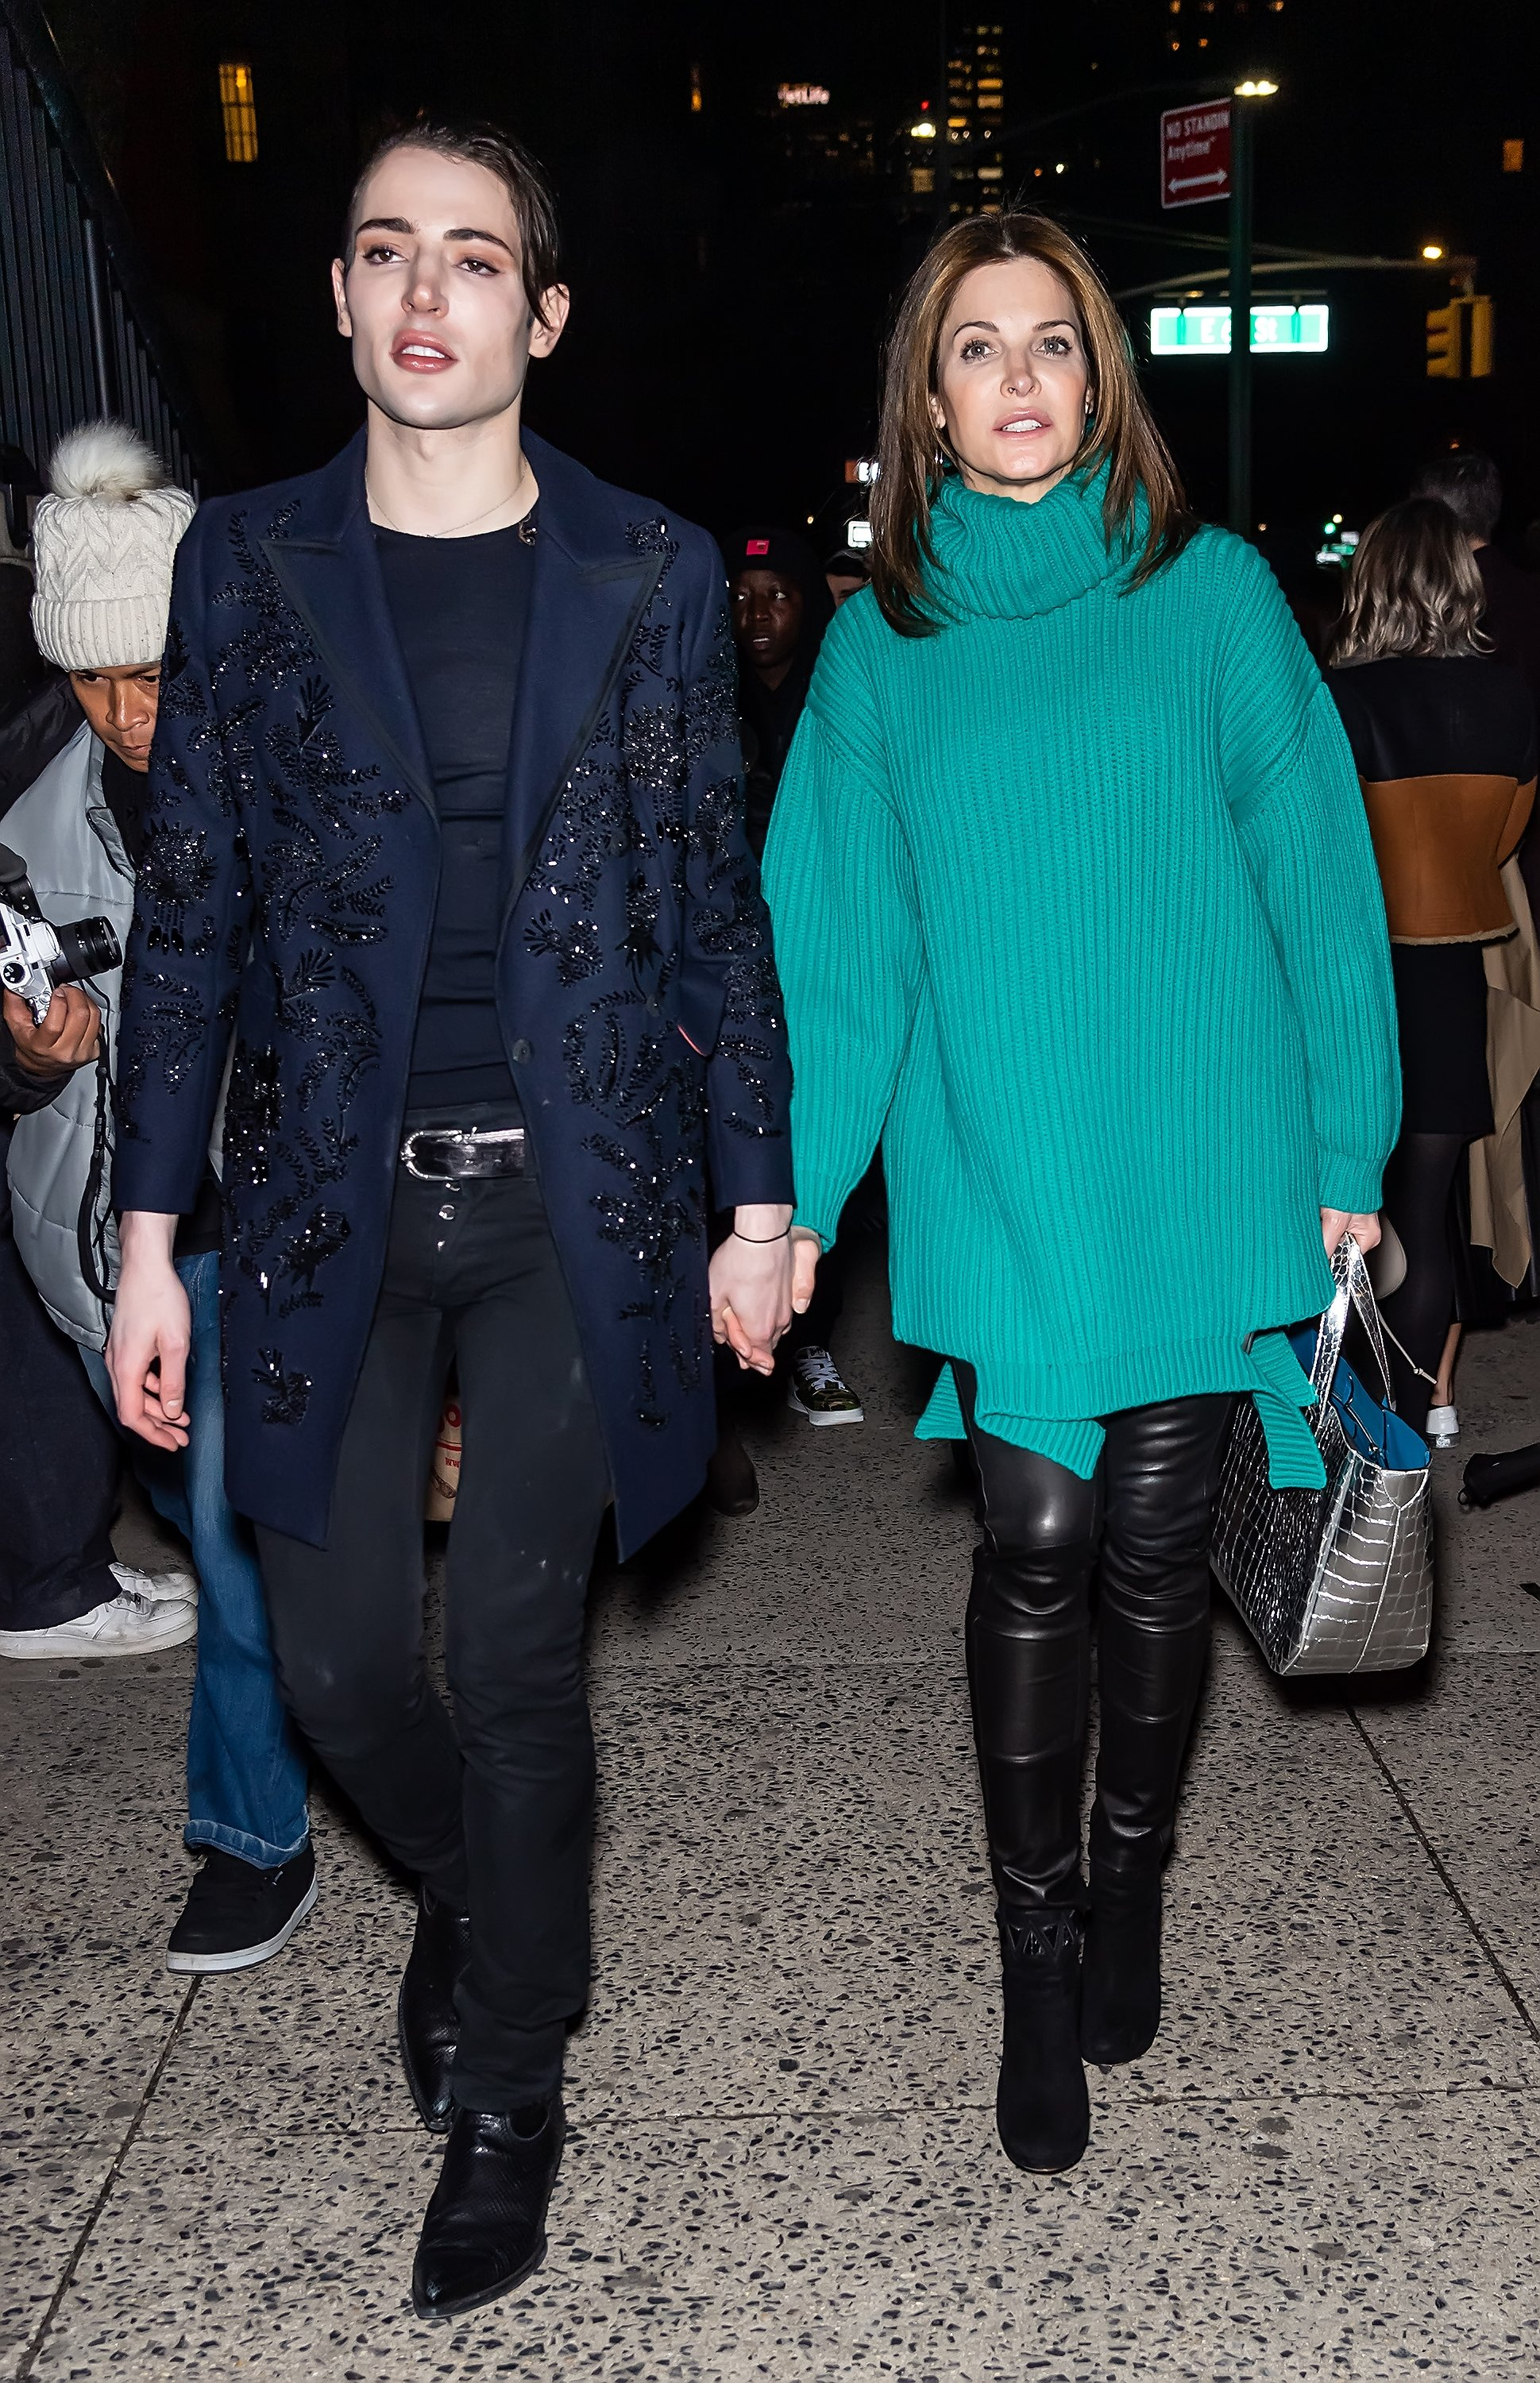 Stephanie Seymore and her son Harry Brant pictured leaving the Marc Jacobs Fall 2020 runway show, 2020, New York City. Photo: Getty Images.